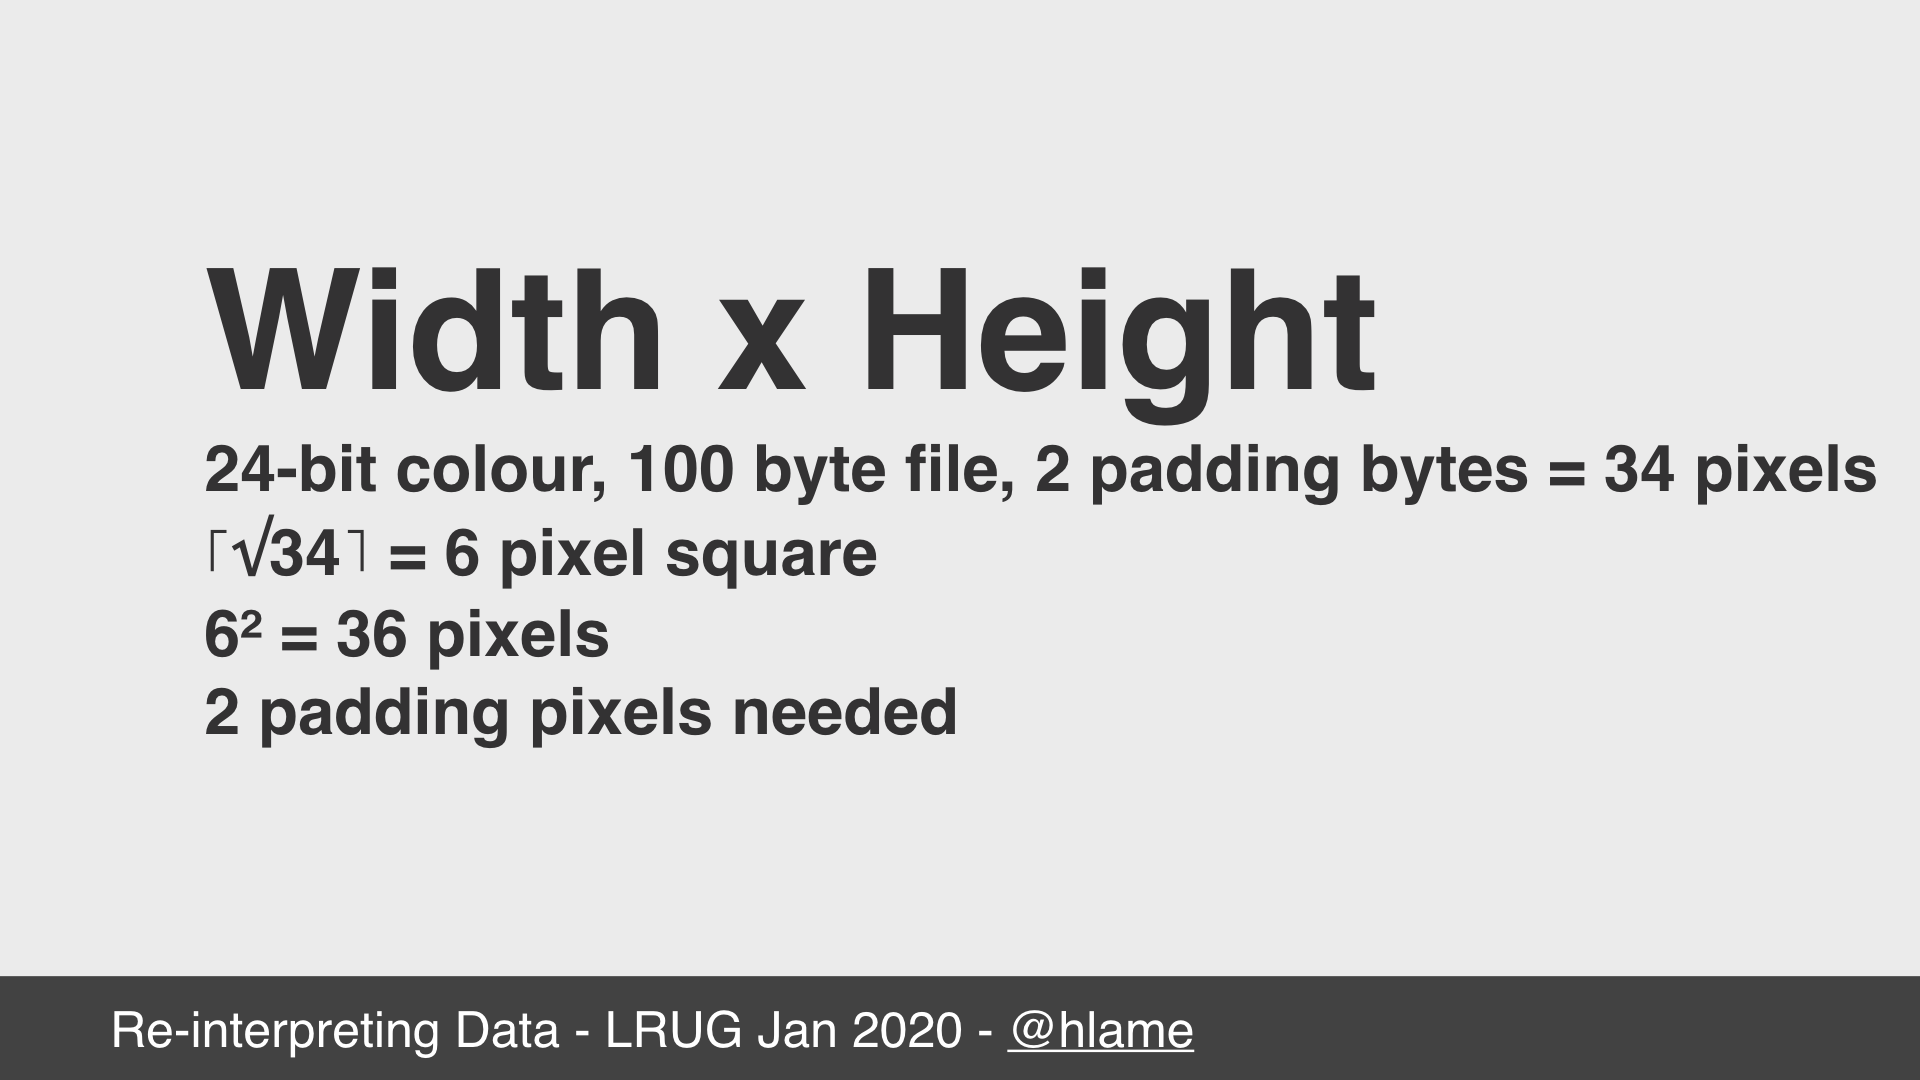 text: Width x Height; 24-bit colour, 100 byte file, 2 padding bytes = 34 pixels; ⌈√272⌉ = 6 pixel square; 6² = 36 pixels; 2 padding pixels needed